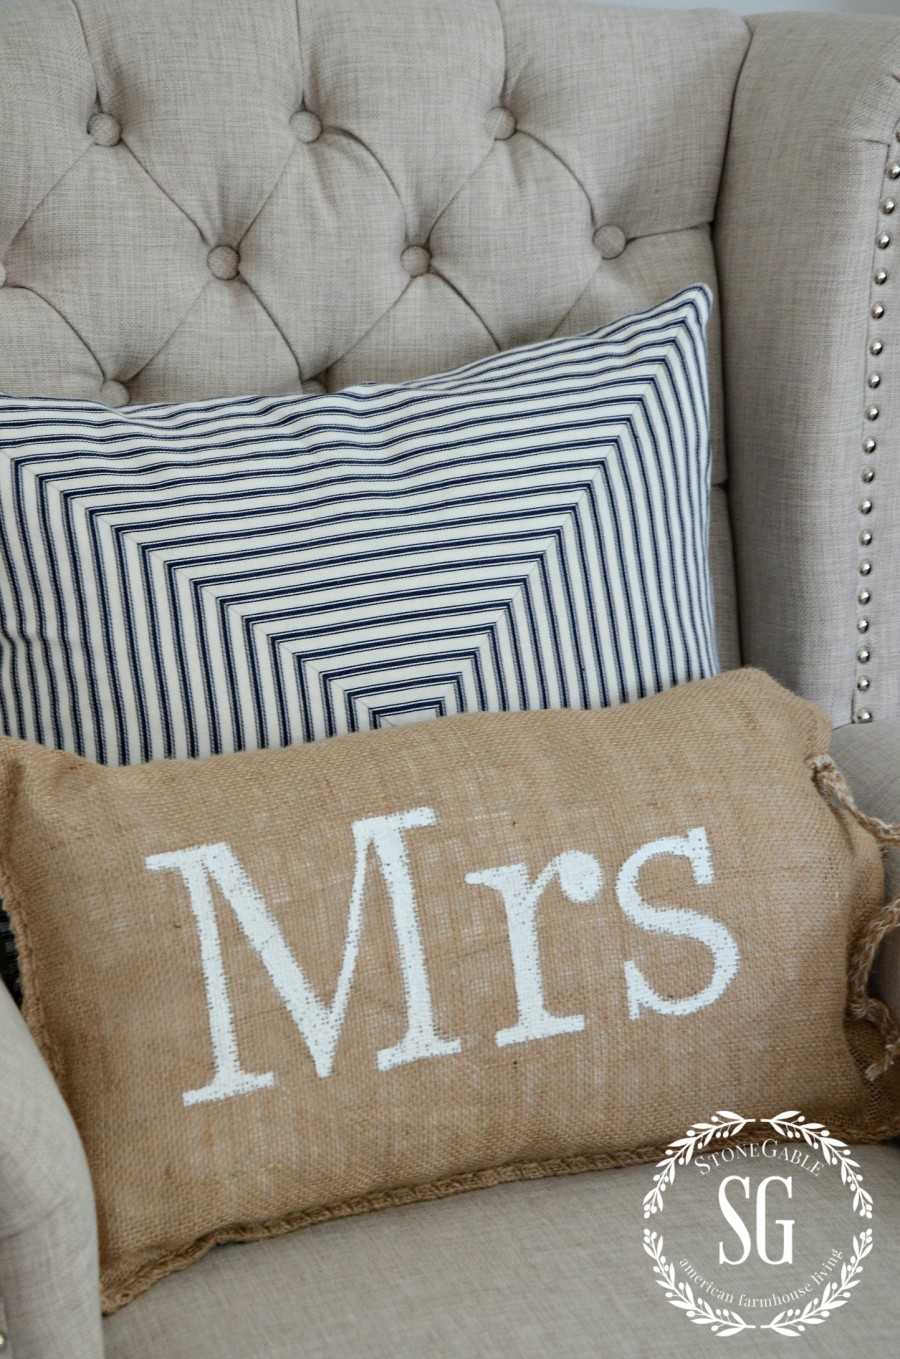 BLUE AND WHITE GUEST ROOM-pillows in chair-stonegableblog.com